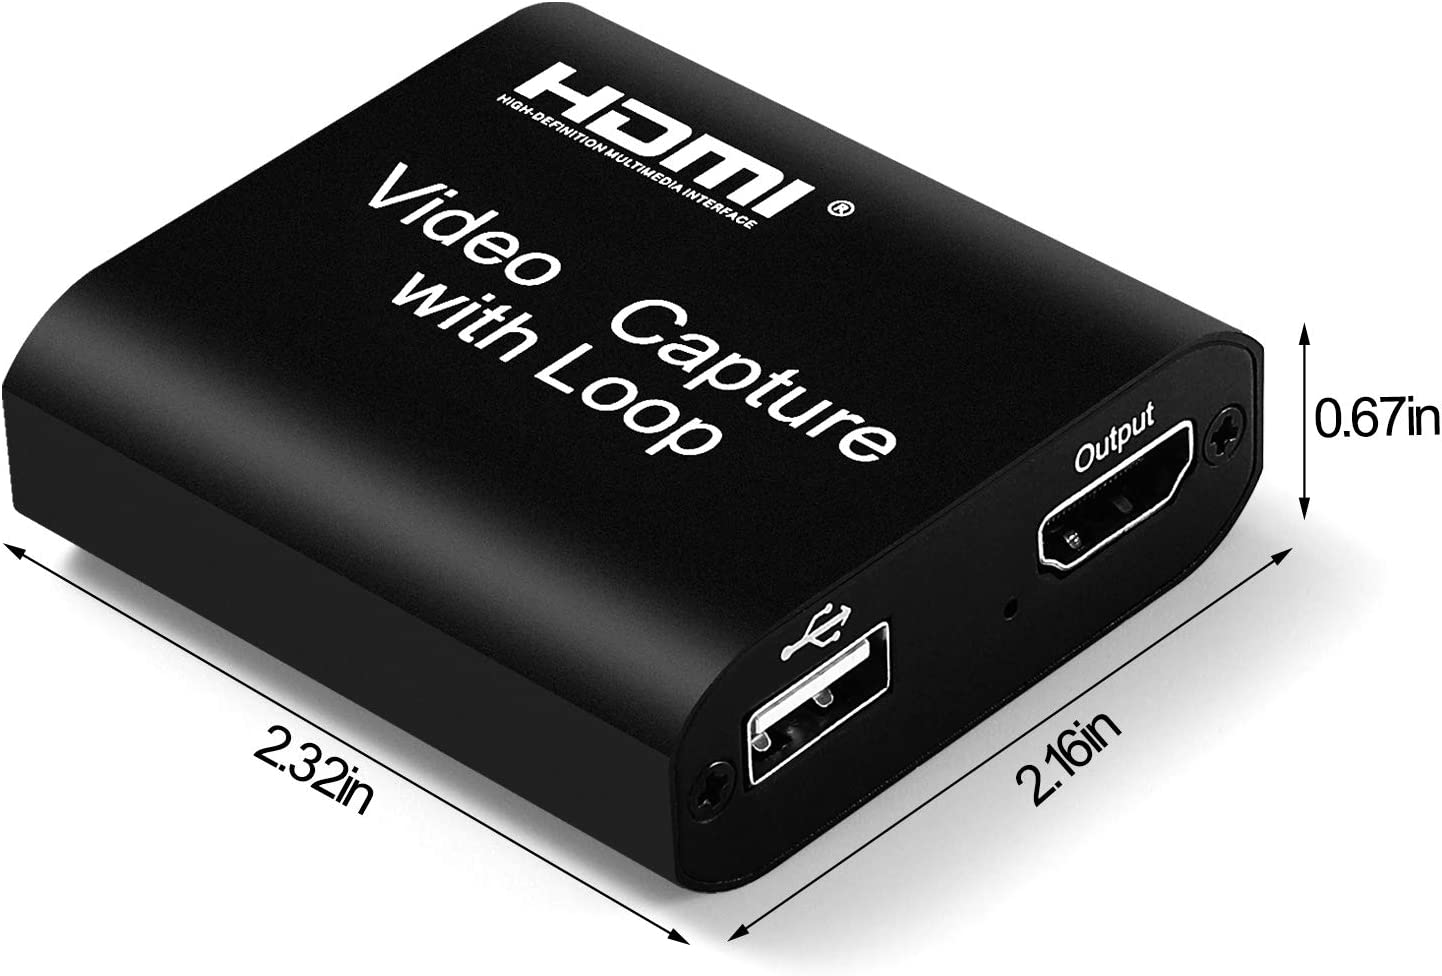 No Driver Needed Easy Operation XIANREN HDMI Capture Card 1080p USB 2.0 UVC and UAC Video Recorder Device Box,Game Broadcast Live Streaming Capture Card